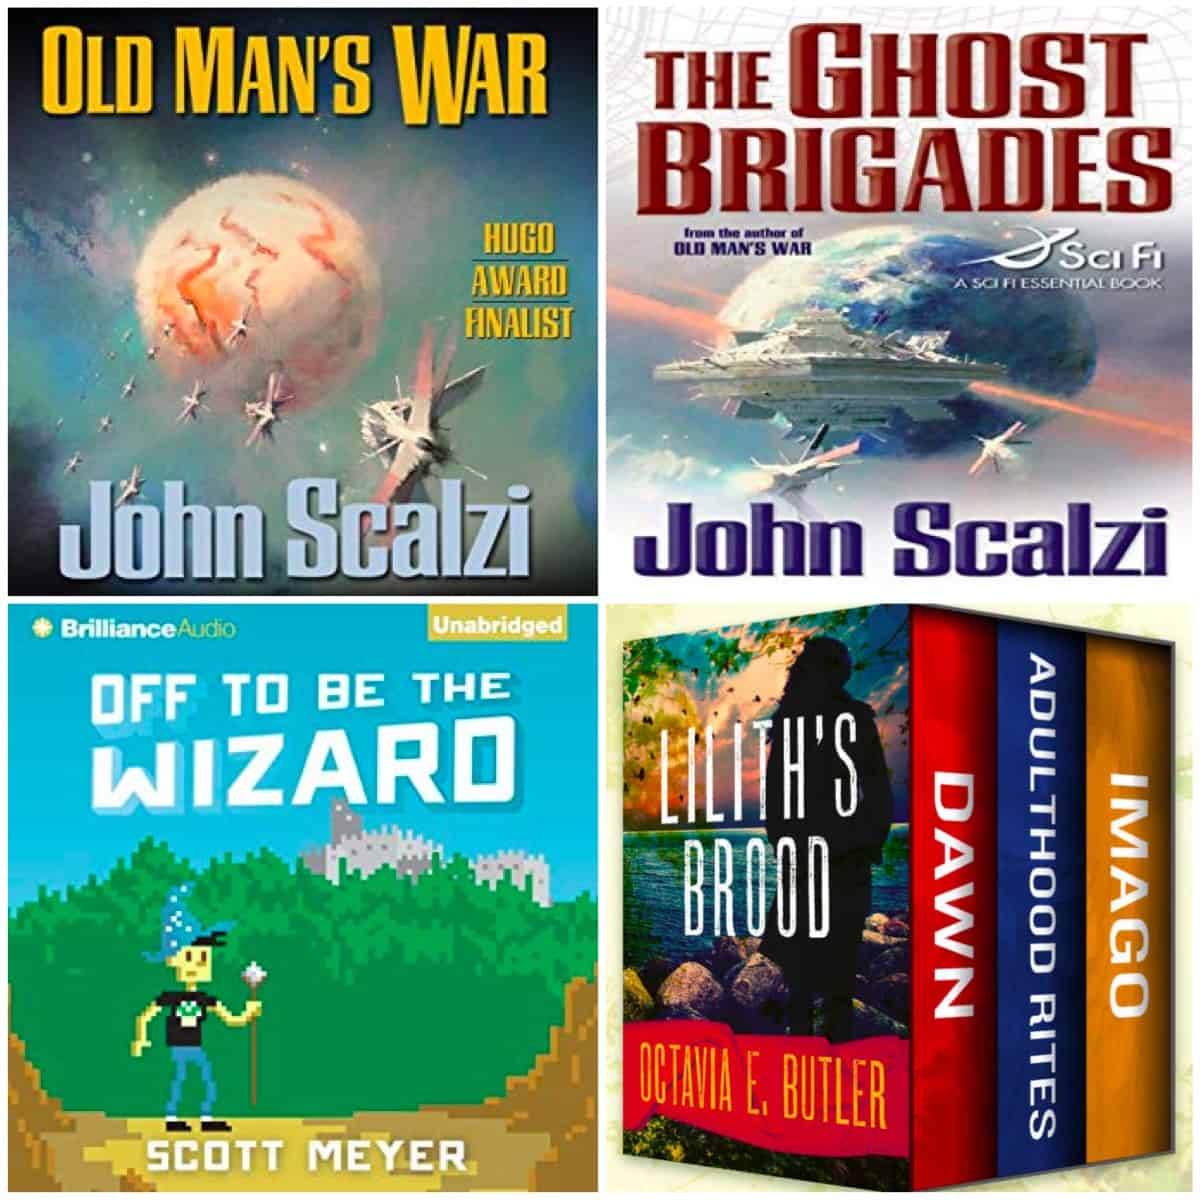 Two books by John Scalzi, Off To Be The Wizard, and Octavia Butler's Xenogenesis Trilogy!